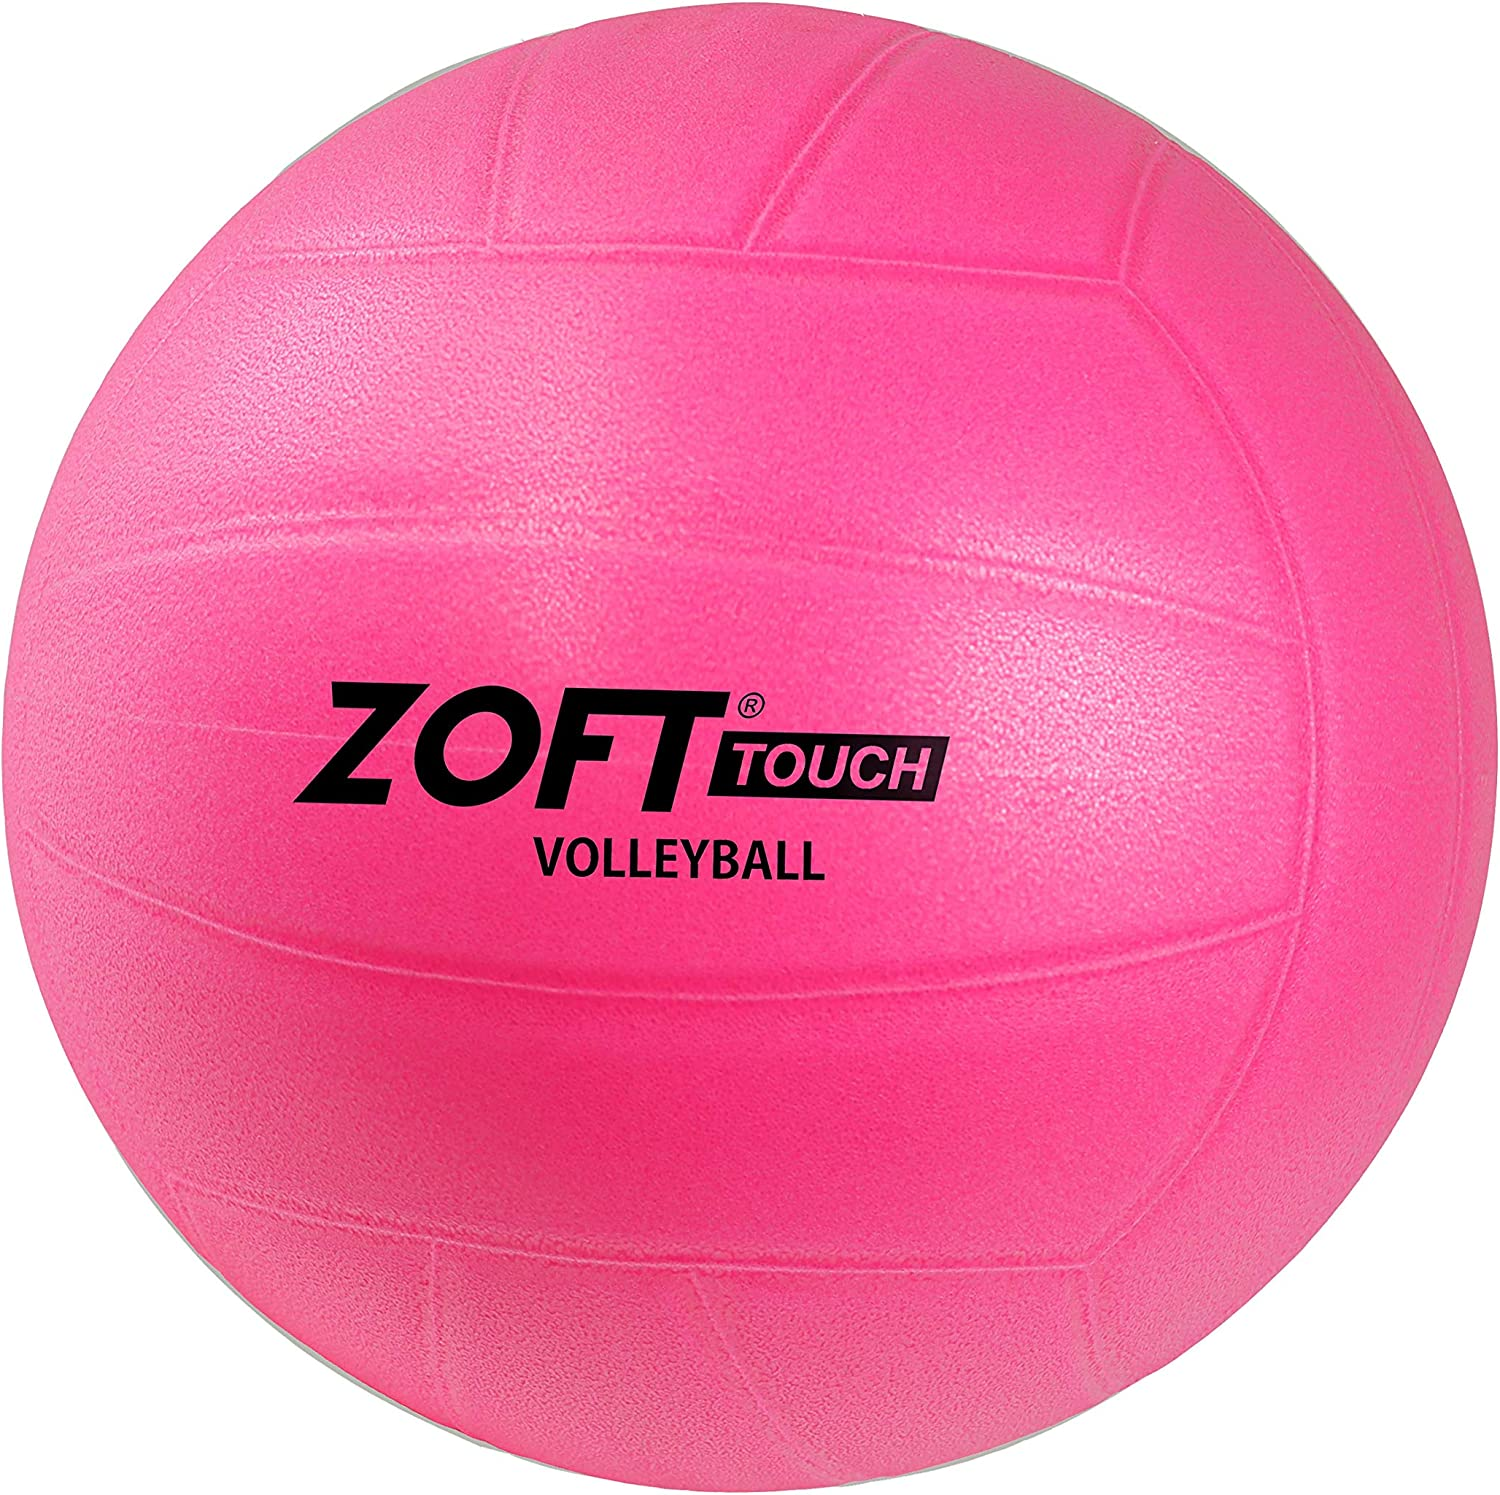 First-Play Zoft Touch Volleyball